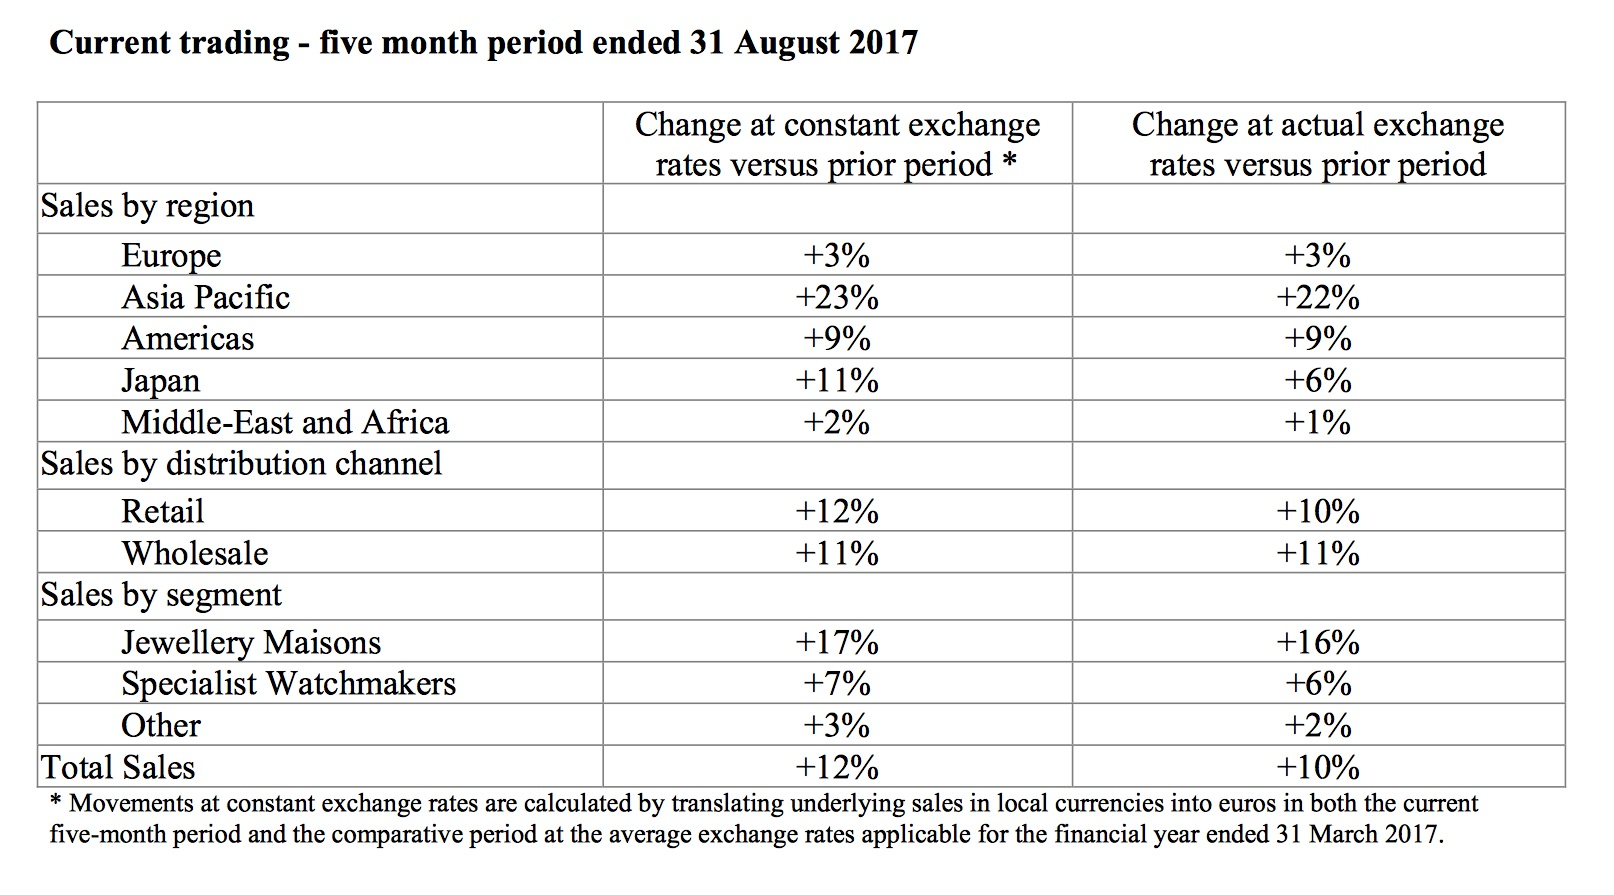 Richemont sales increase 31 august 2017